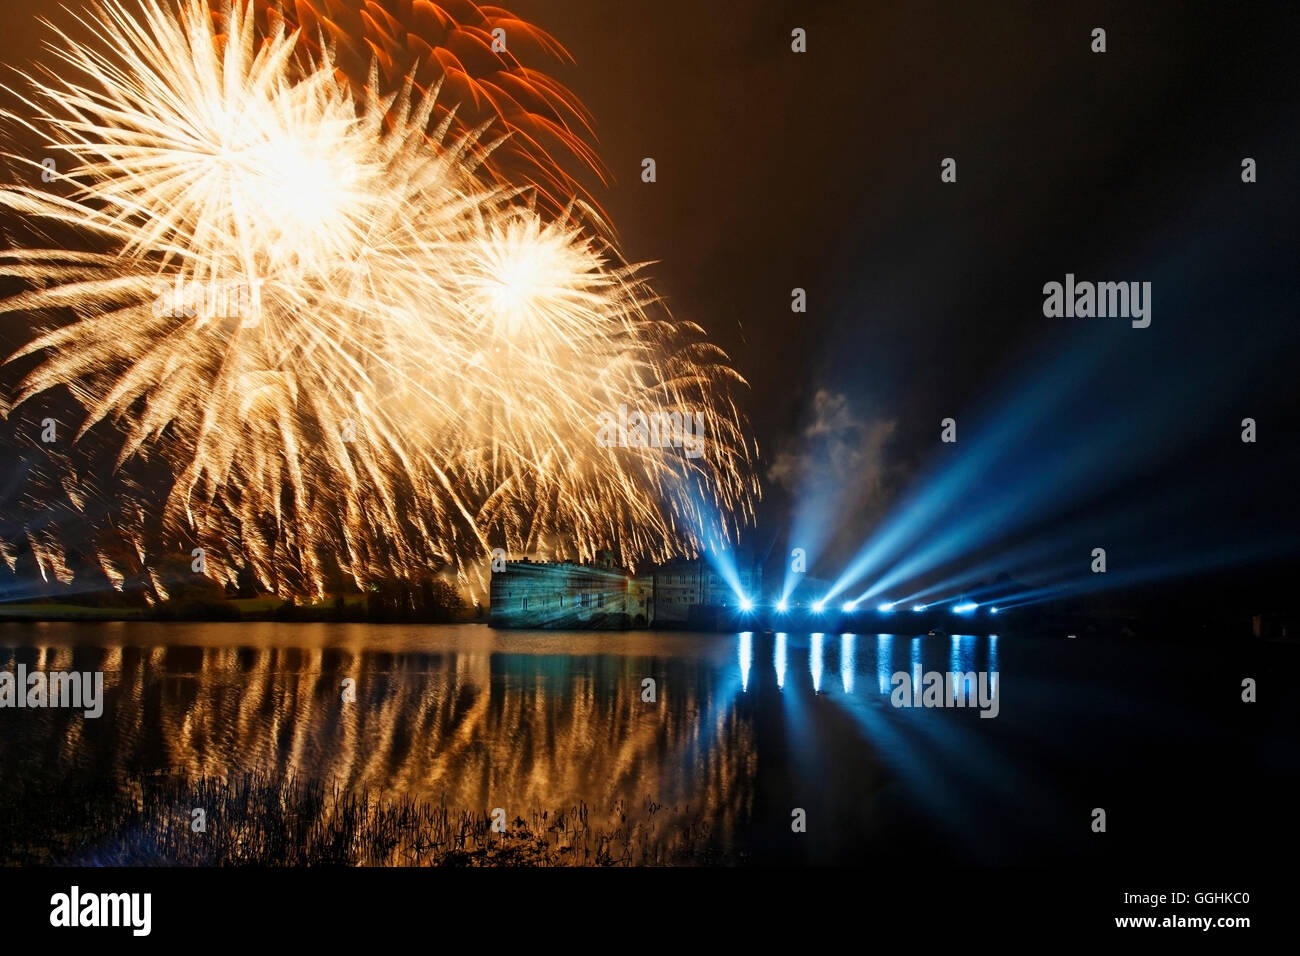 D'artifice à Leeds Castle, Maidstone, Kent, Angleterre, Grande-Bretagne Photo Stock